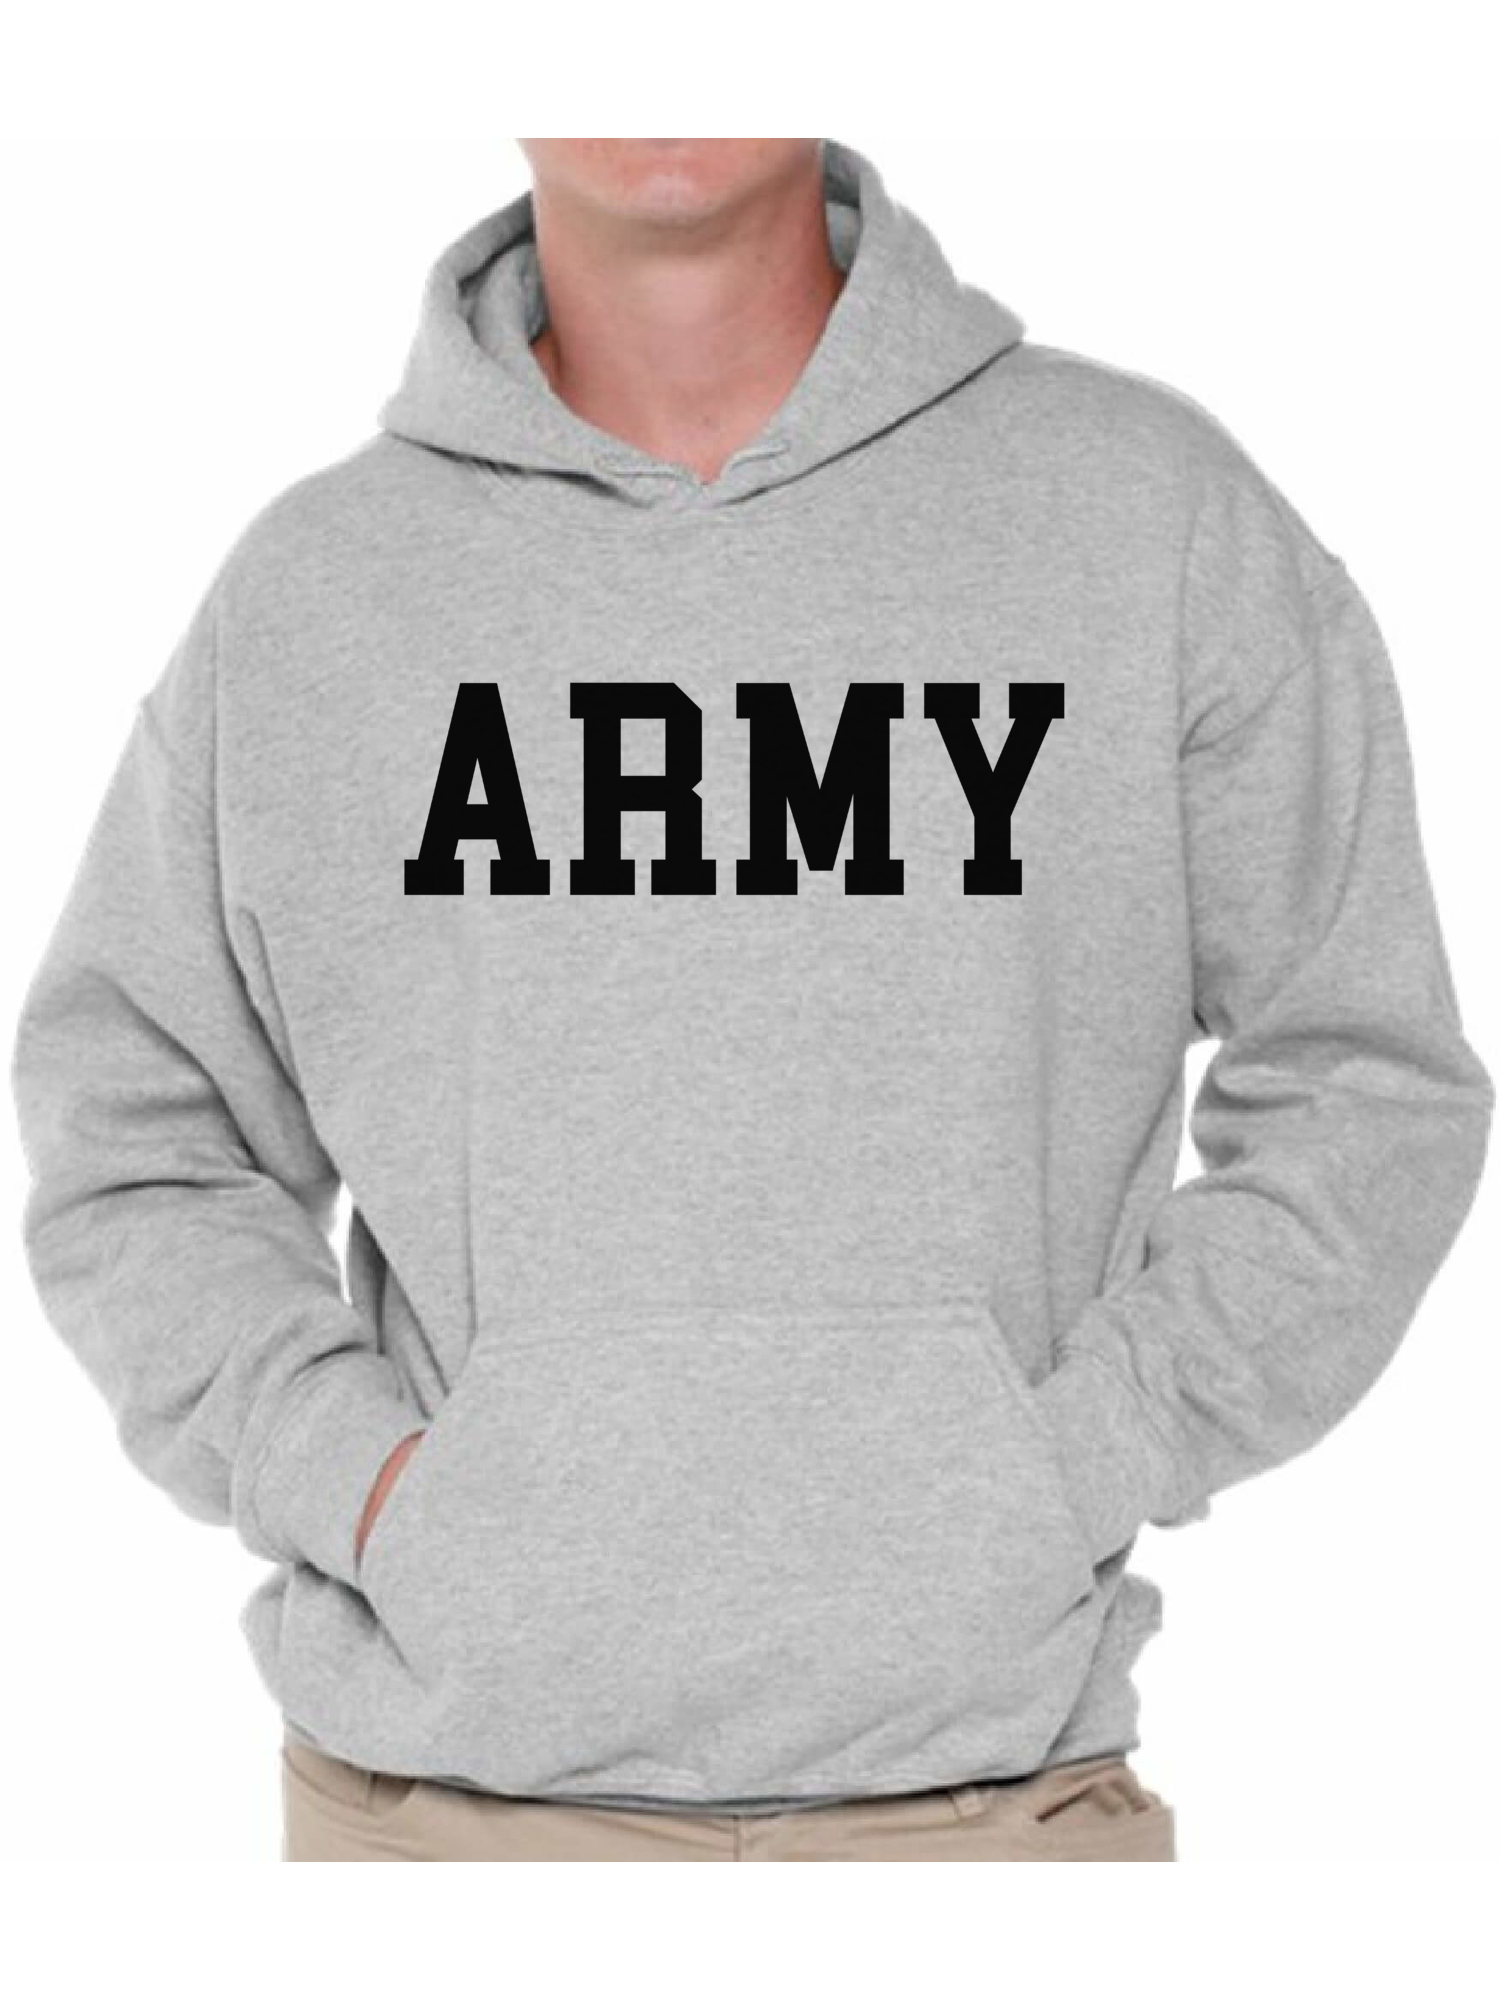 US Army I Love My Soldier Homecoming Gift Unisex Hoodie For Girls and Boys Youth Sweatshirt